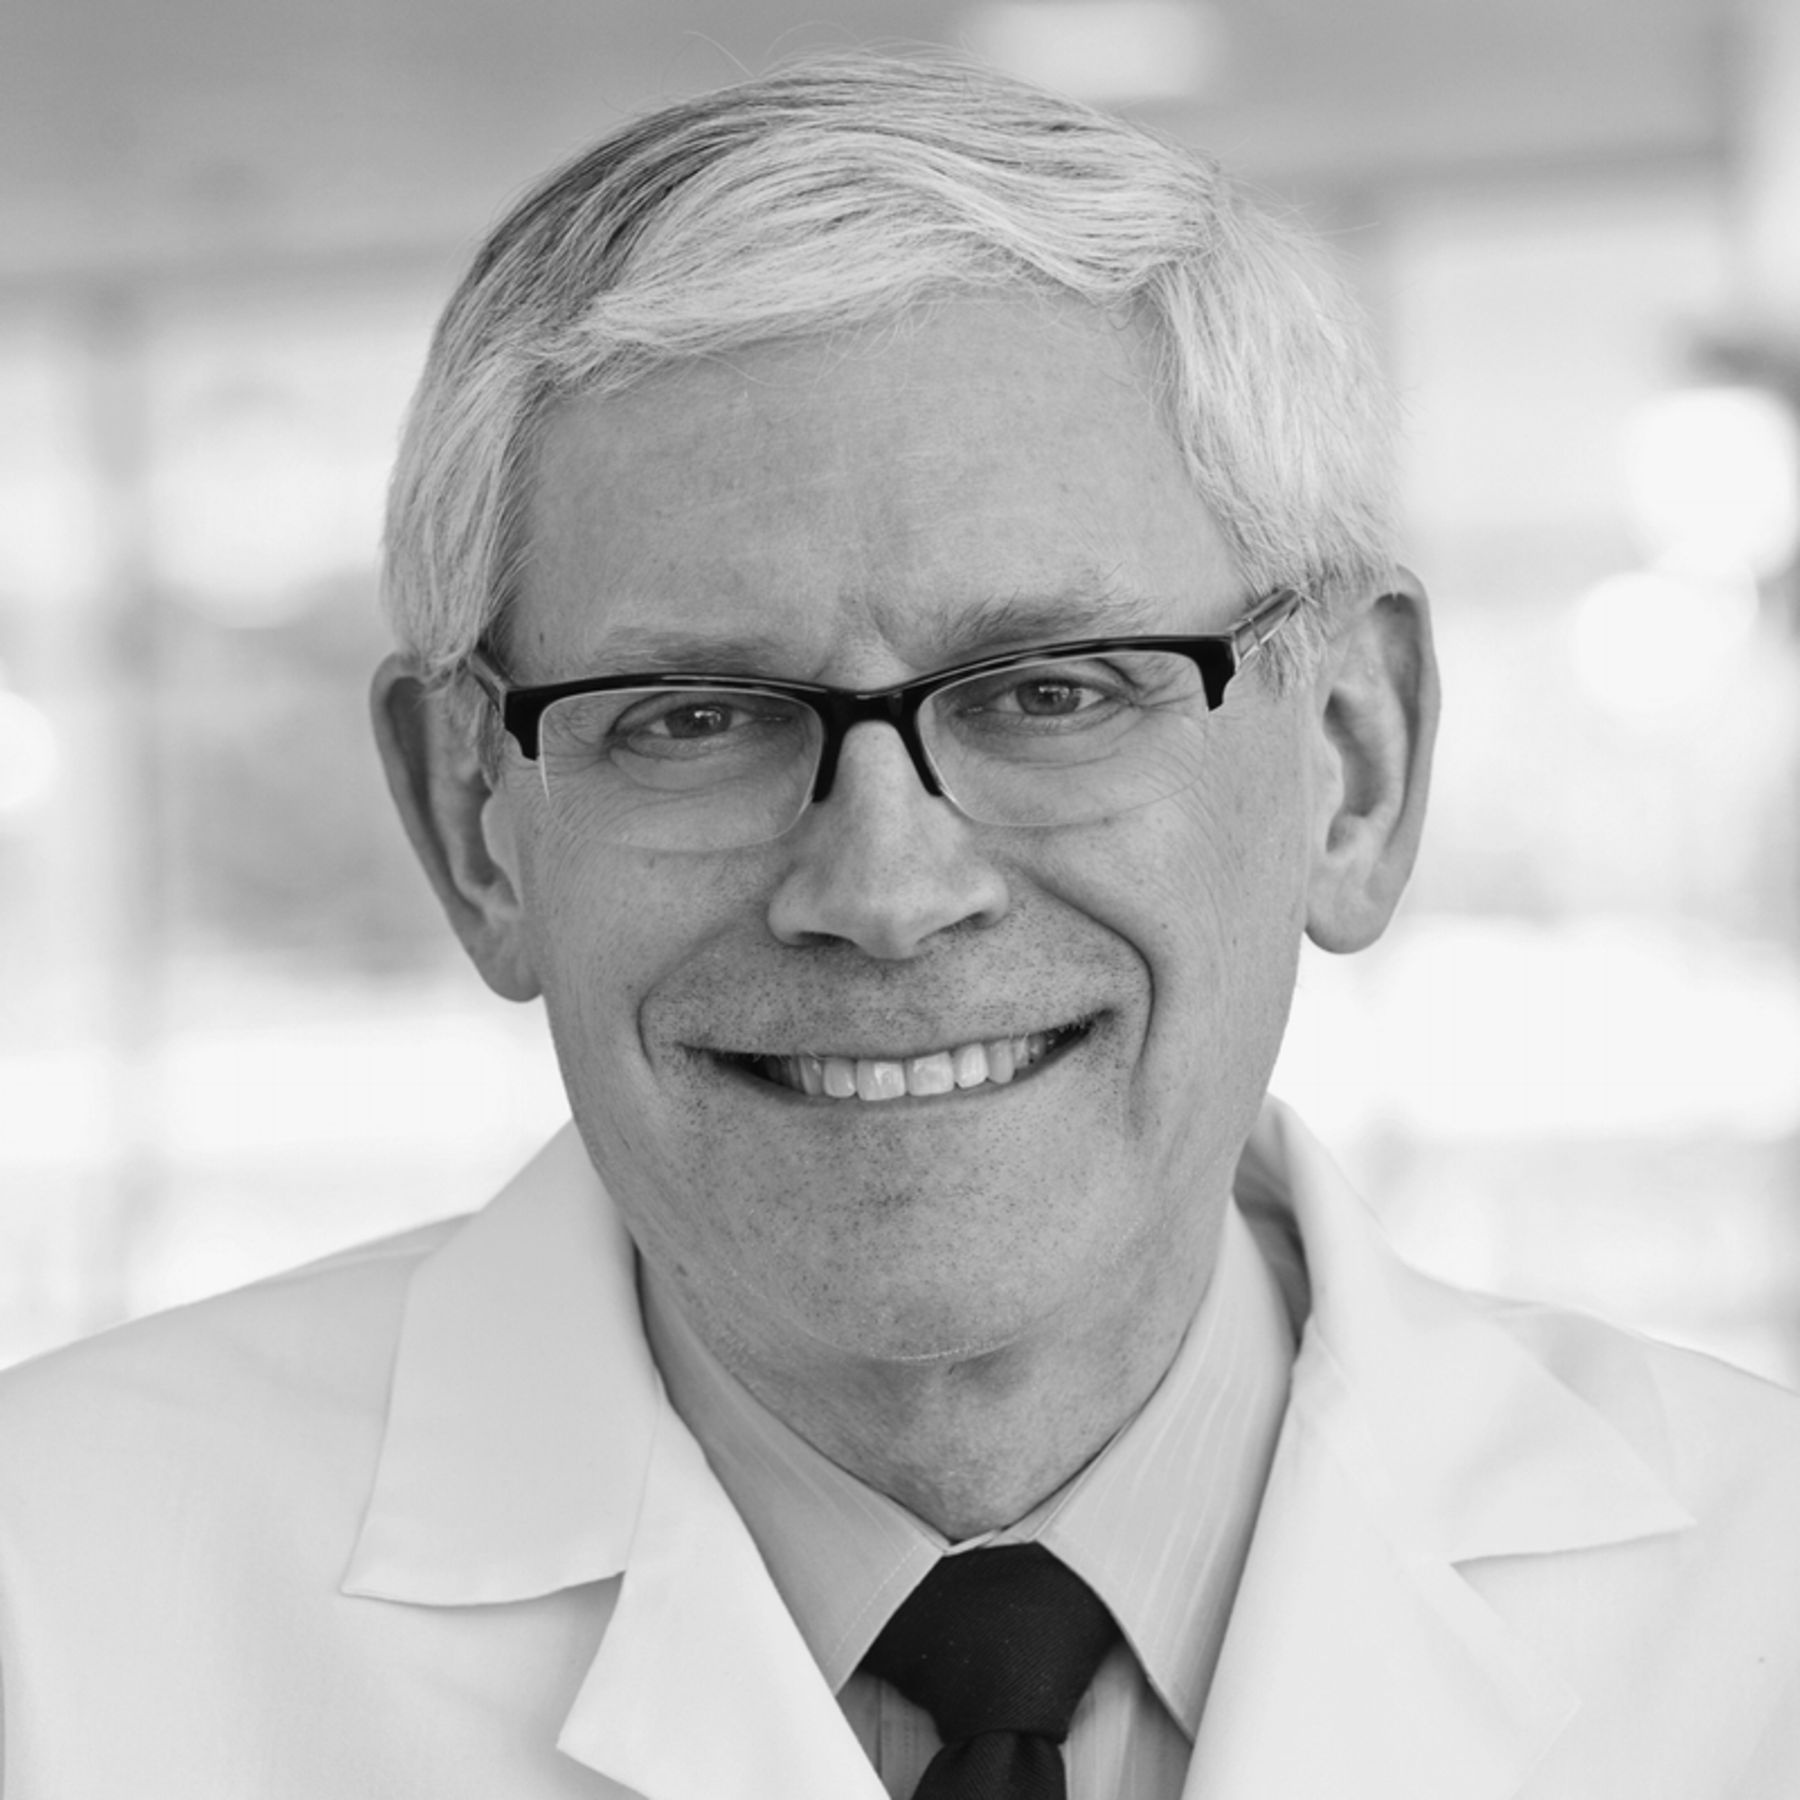 Dean of School of Medicine Appointed at UMKC | Journal of